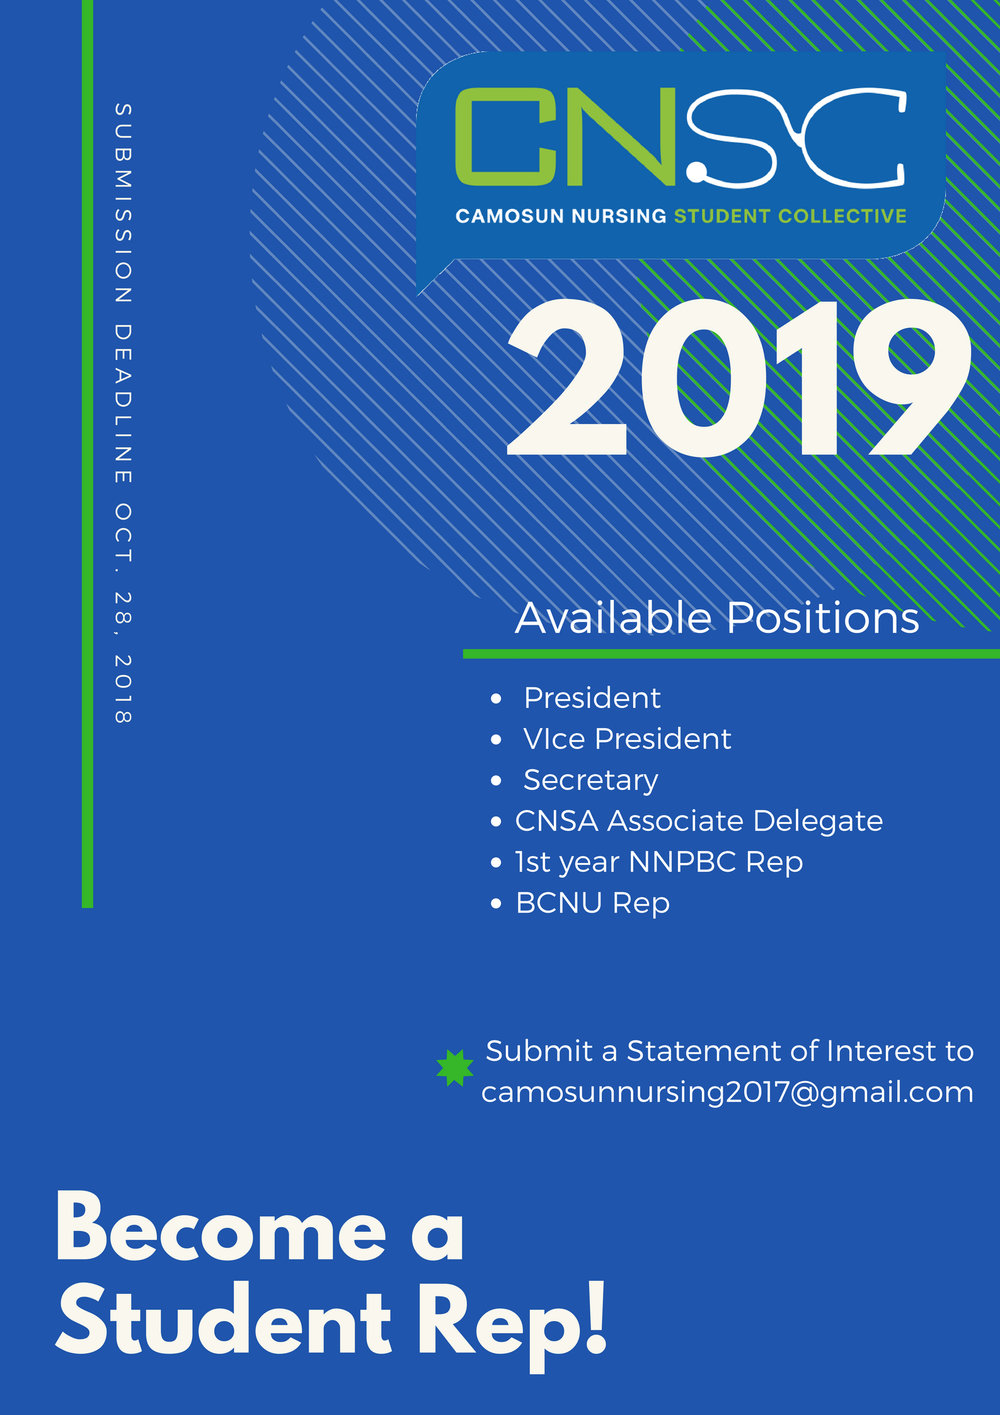 CNSC Recruitment Poster.jpg